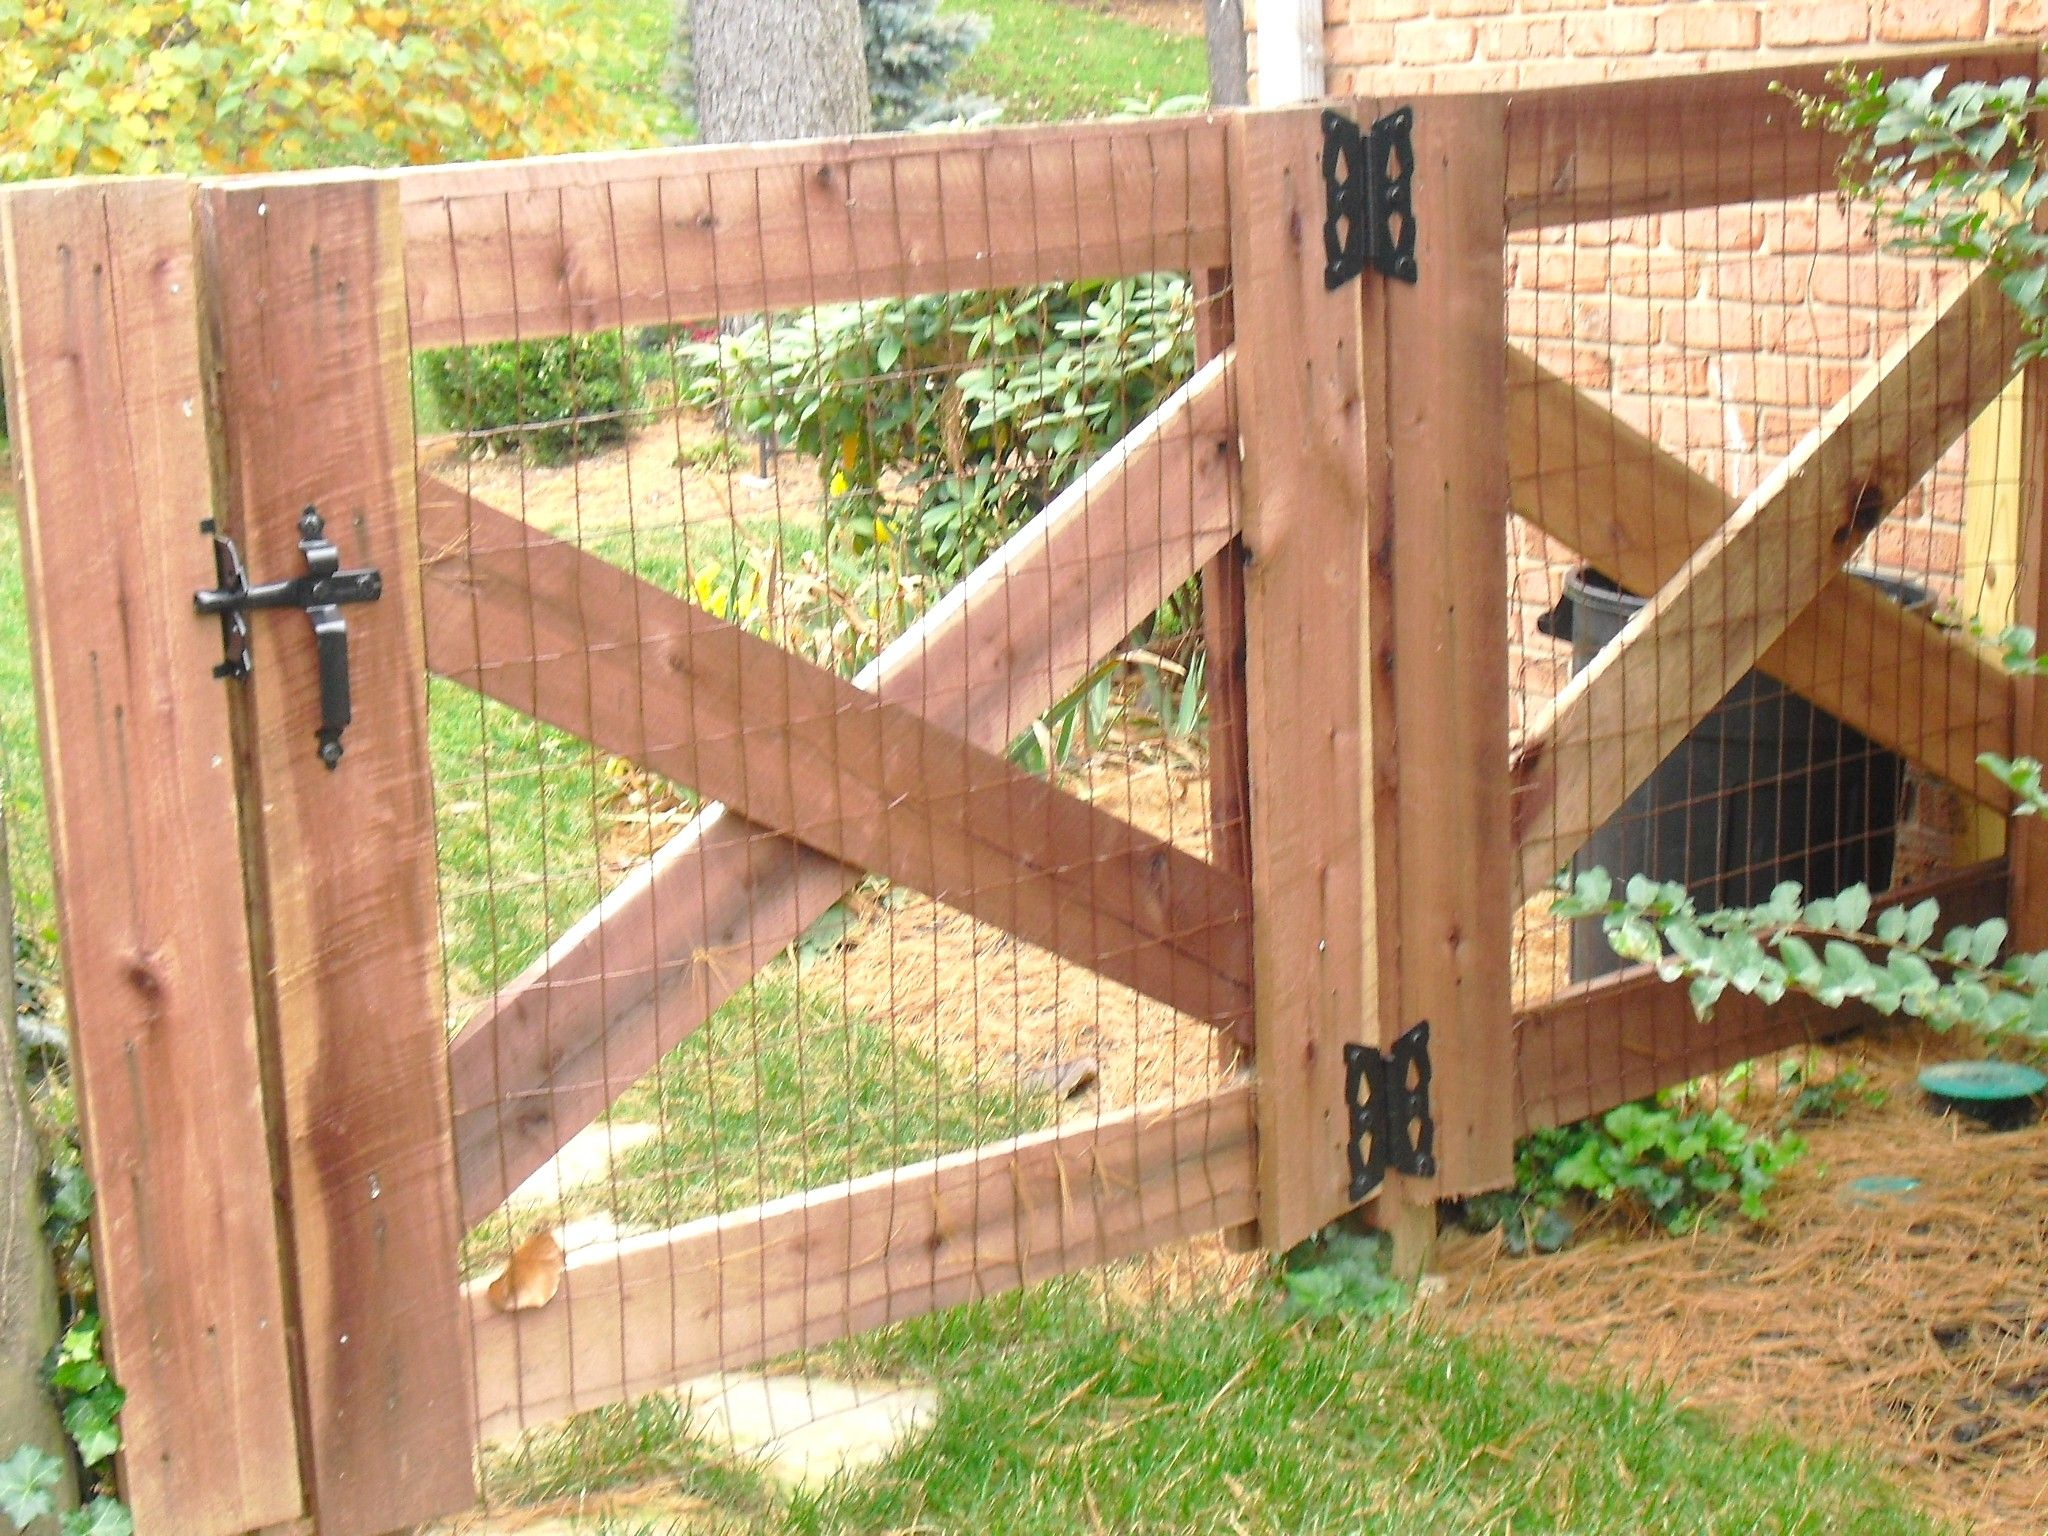 Garden fence vegetable garden fence gate decoration home ideas - Wood The Fence Company Llc Wooden Garden Gatewood